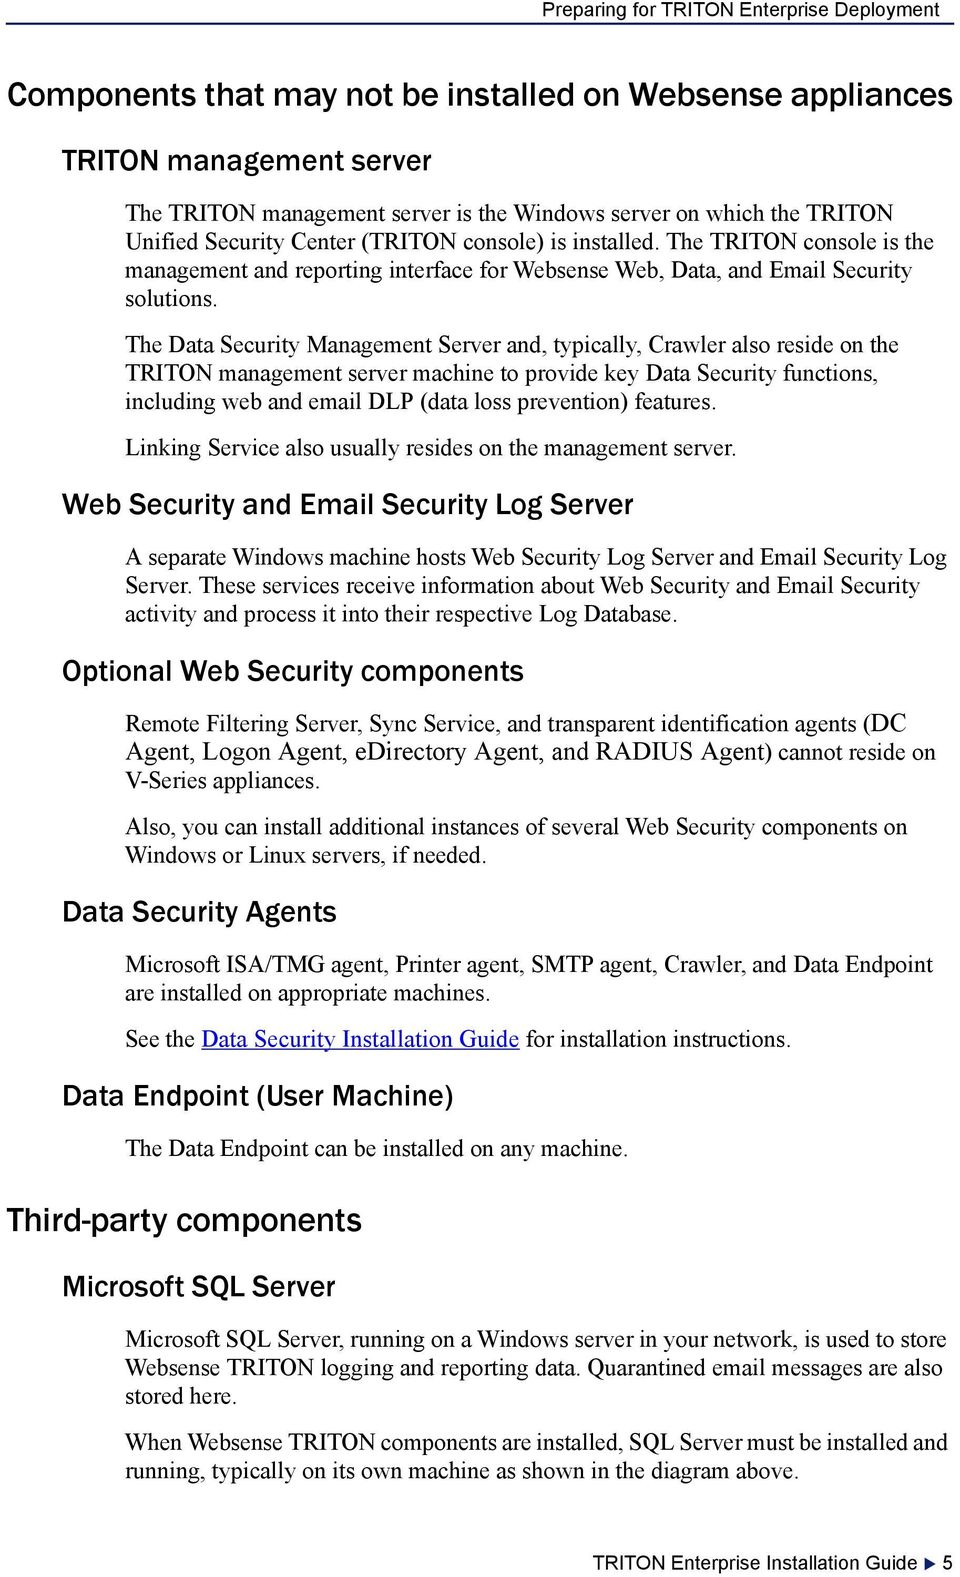 The Data Security Management Server and, typically, Crawler also reside on the TRITON management server machine to provide key Data Security functions, including web and email DLP (data loss